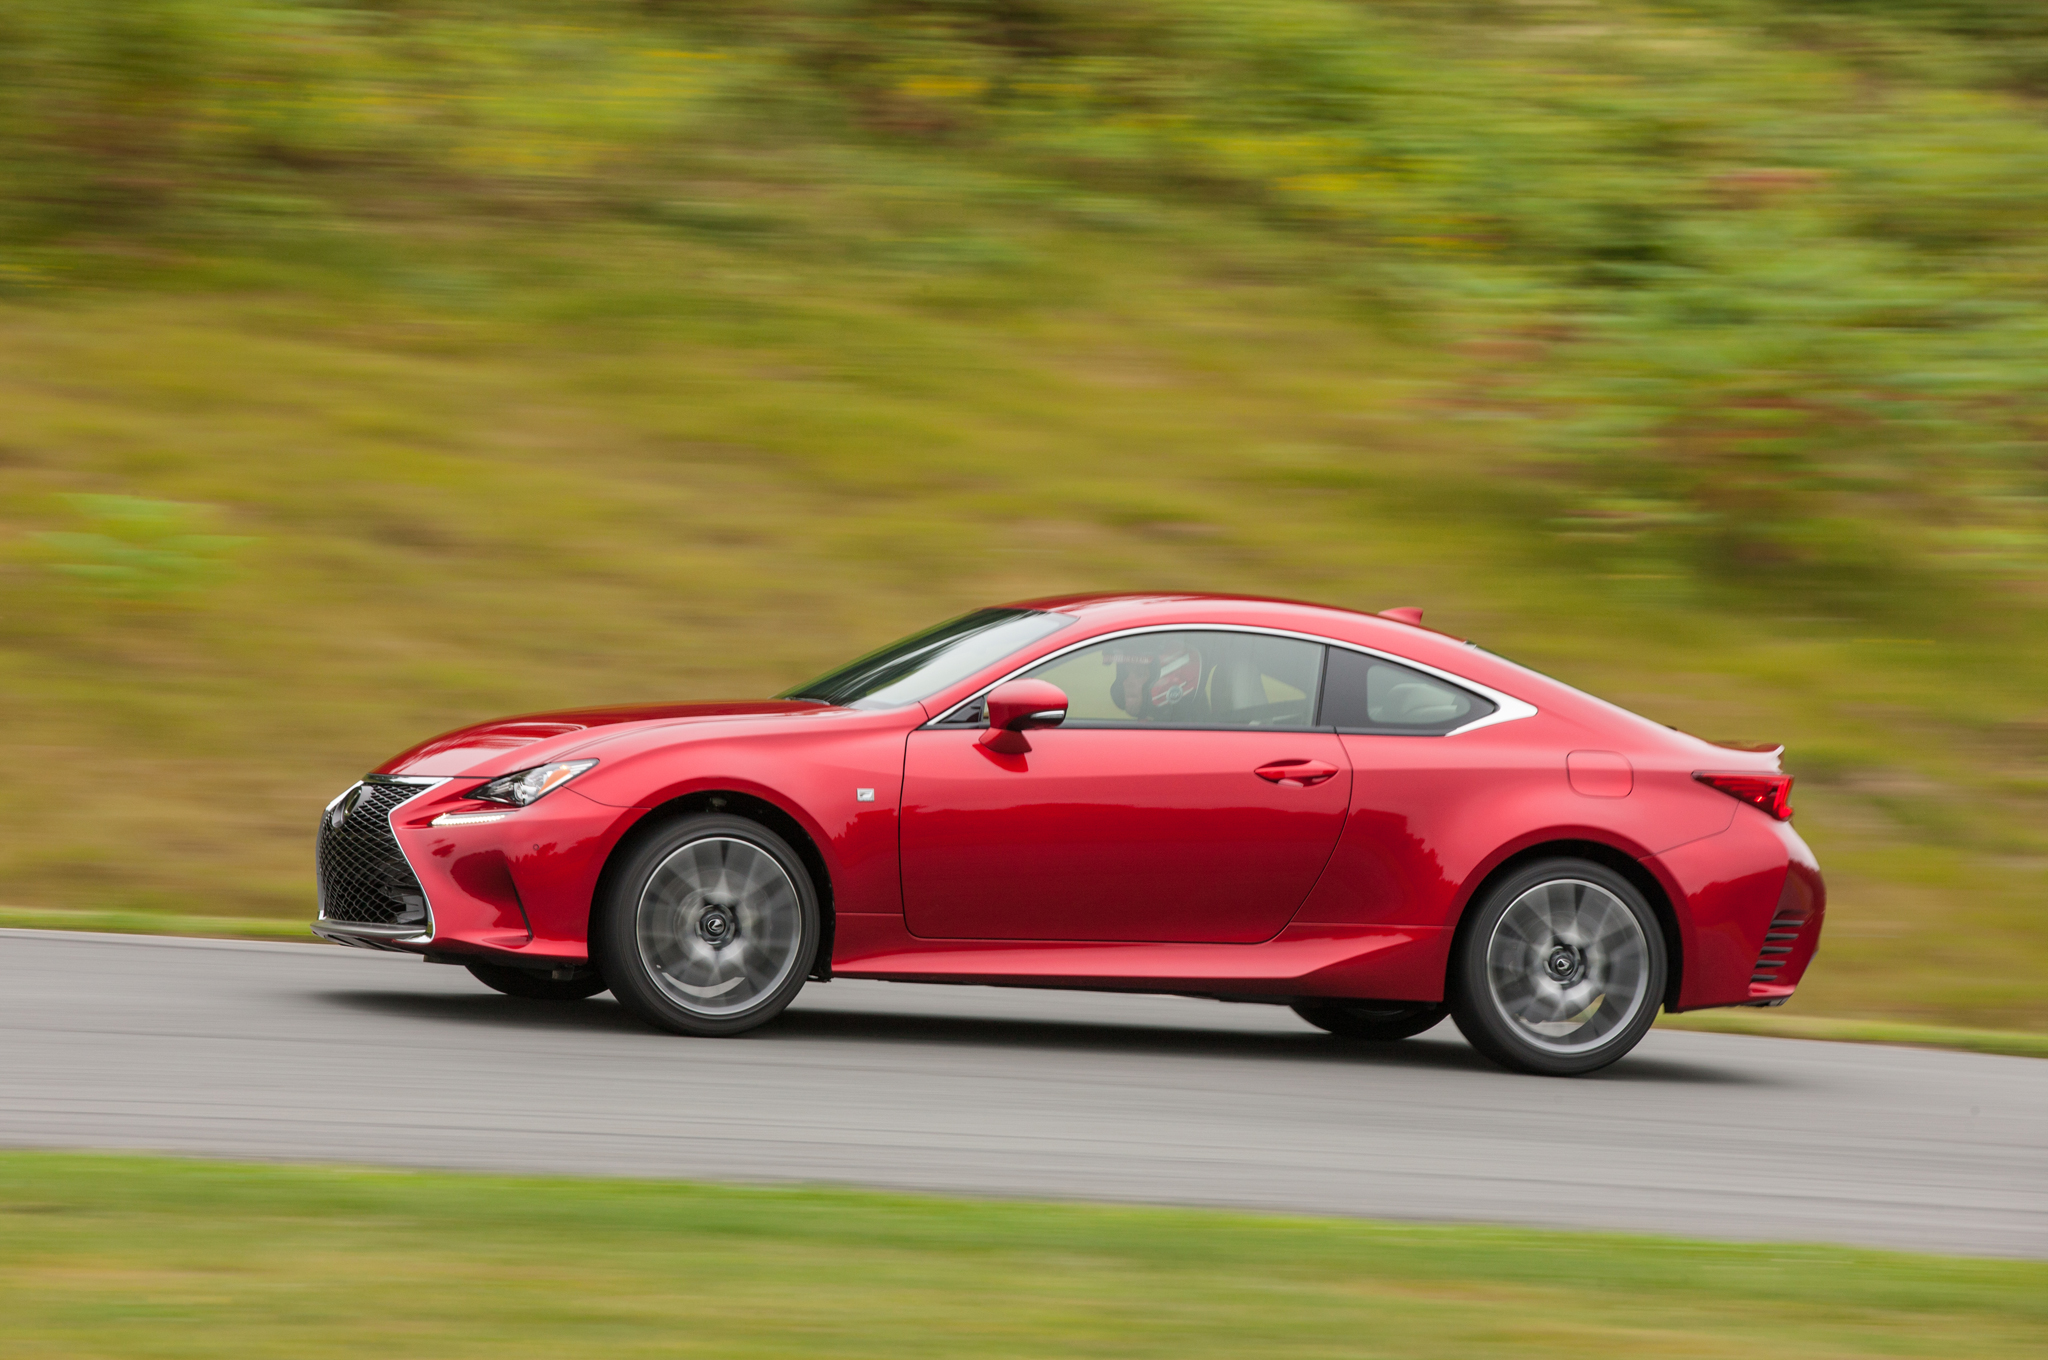 2016 Lexus RC 200t Headed To U.S. With Turbo Four Engine